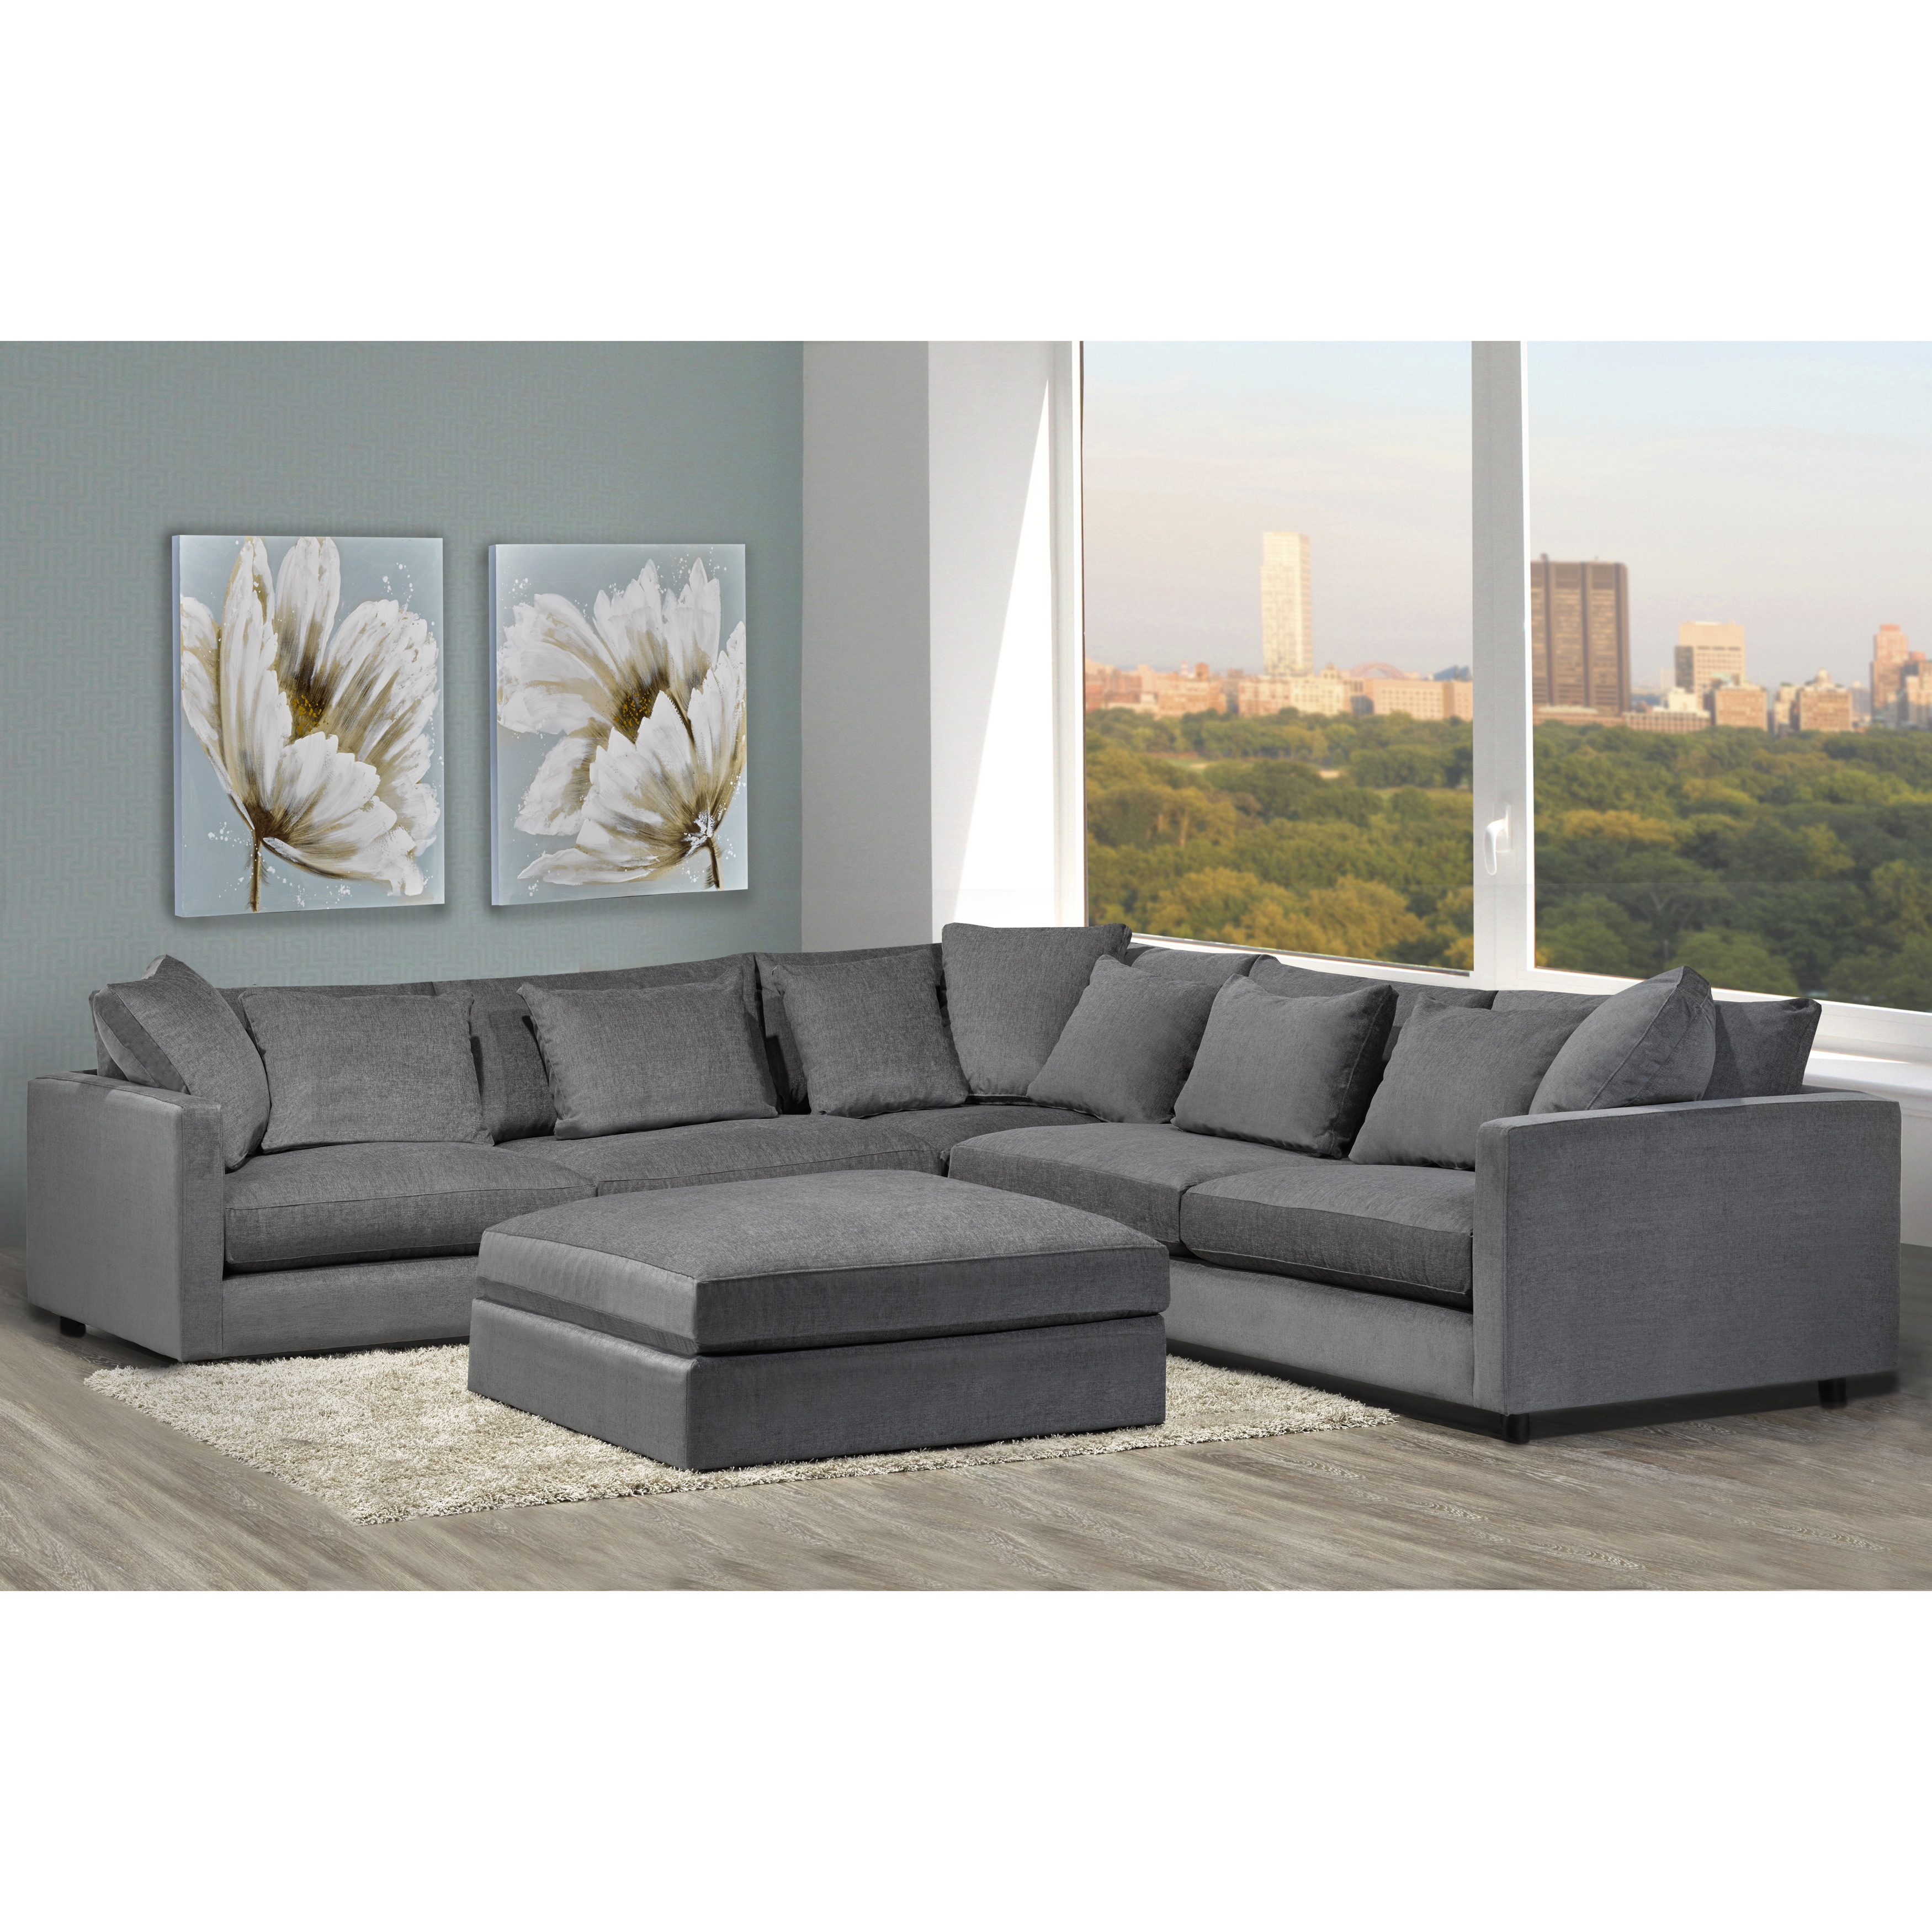 Made to Order Modern Lounge Down Filled Grey Fabric Secti...